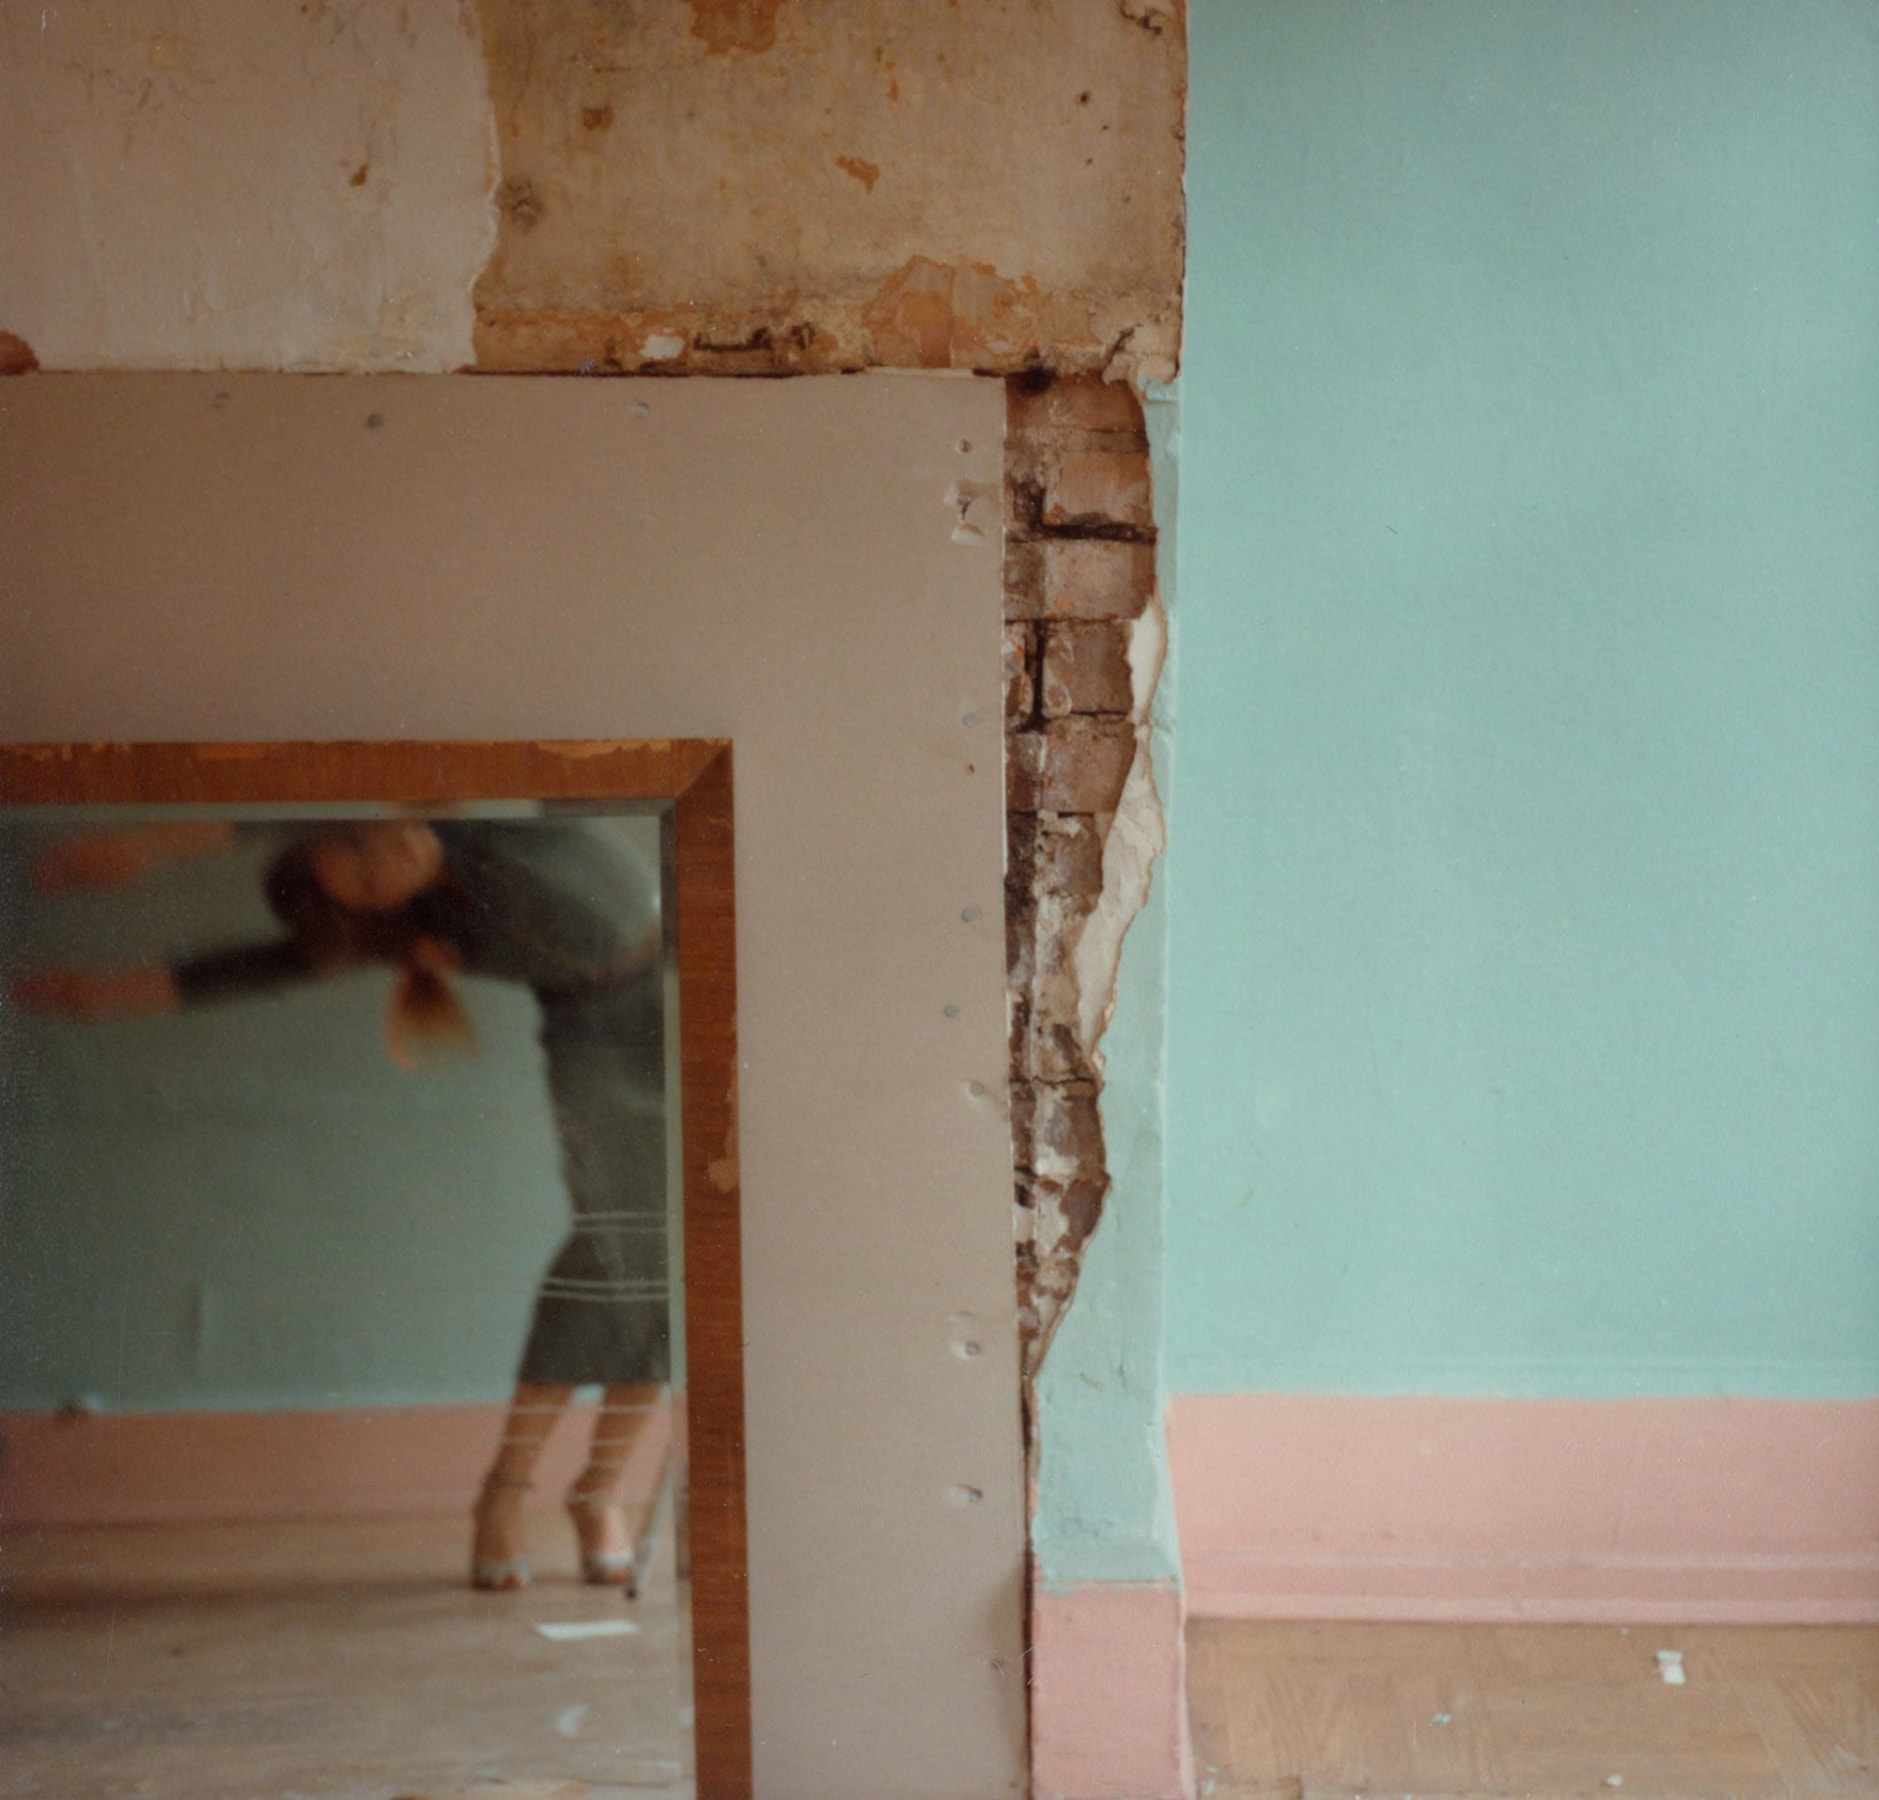 Color photograph of a blue and pink wall with exposed brick and an inlaid mirror, reflecting a blurred bending figure.